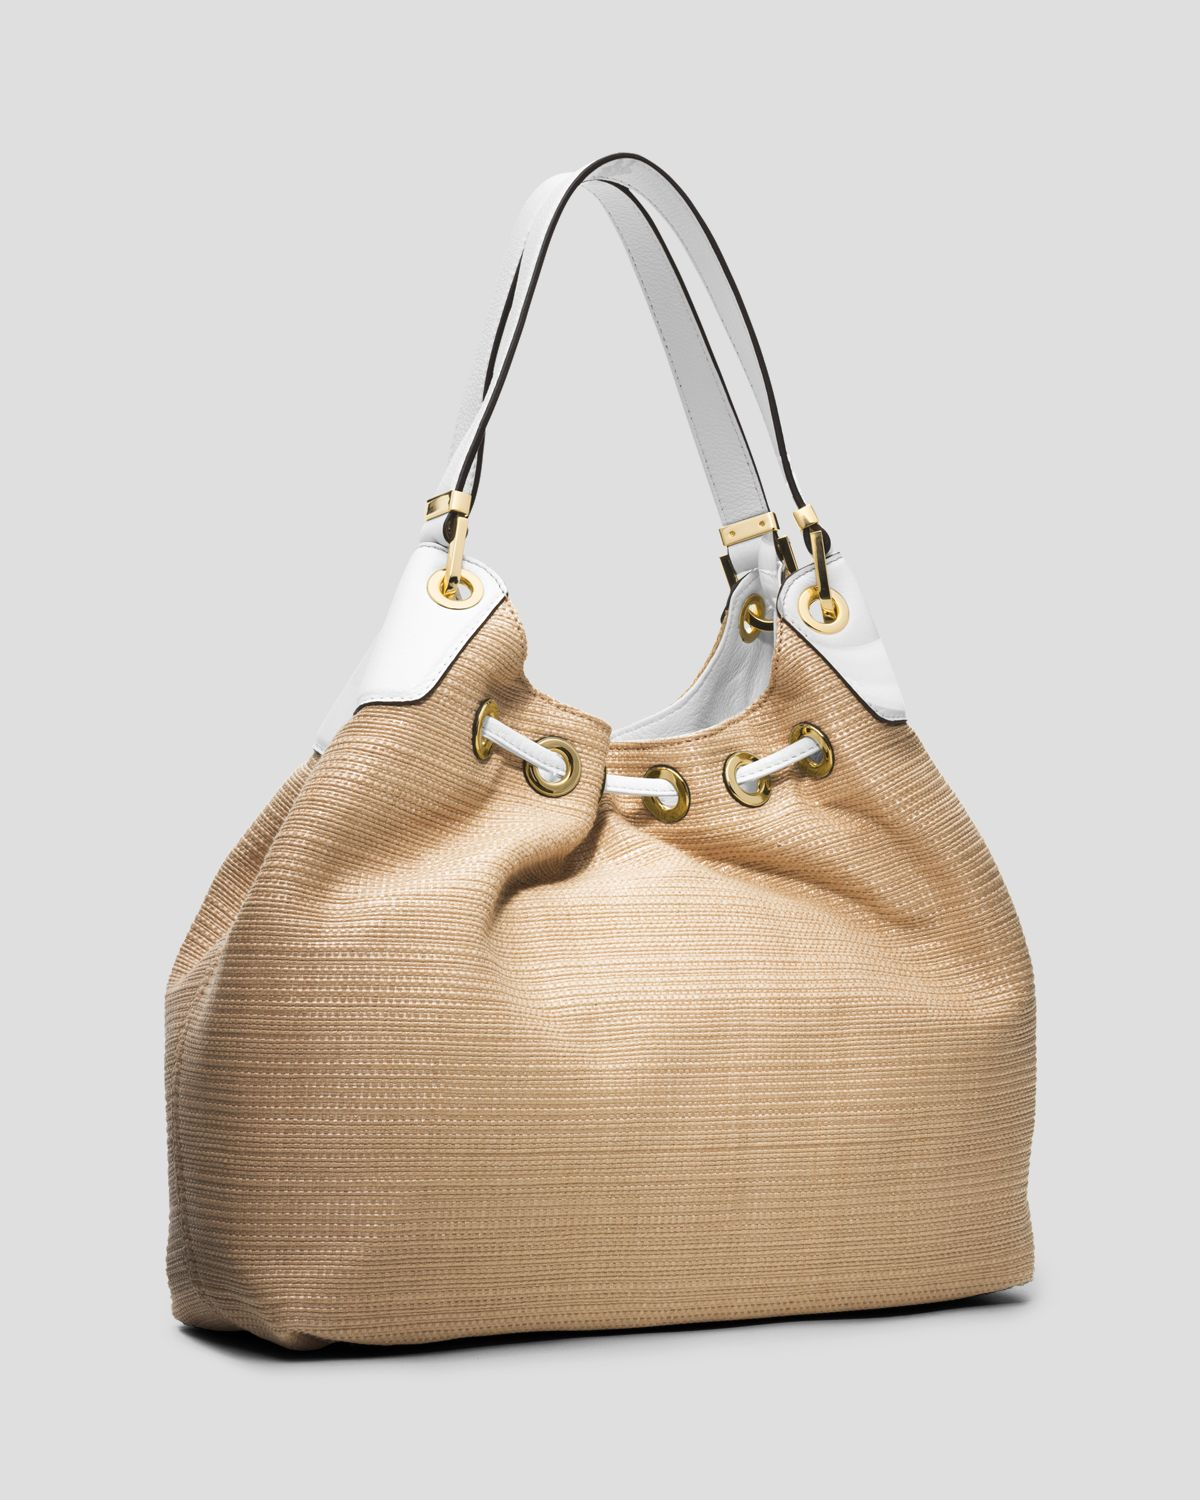 68afc8b3a0f8a Lyst - MICHAEL Michael Kors Tote Middleton Large Straw Drawstring ...